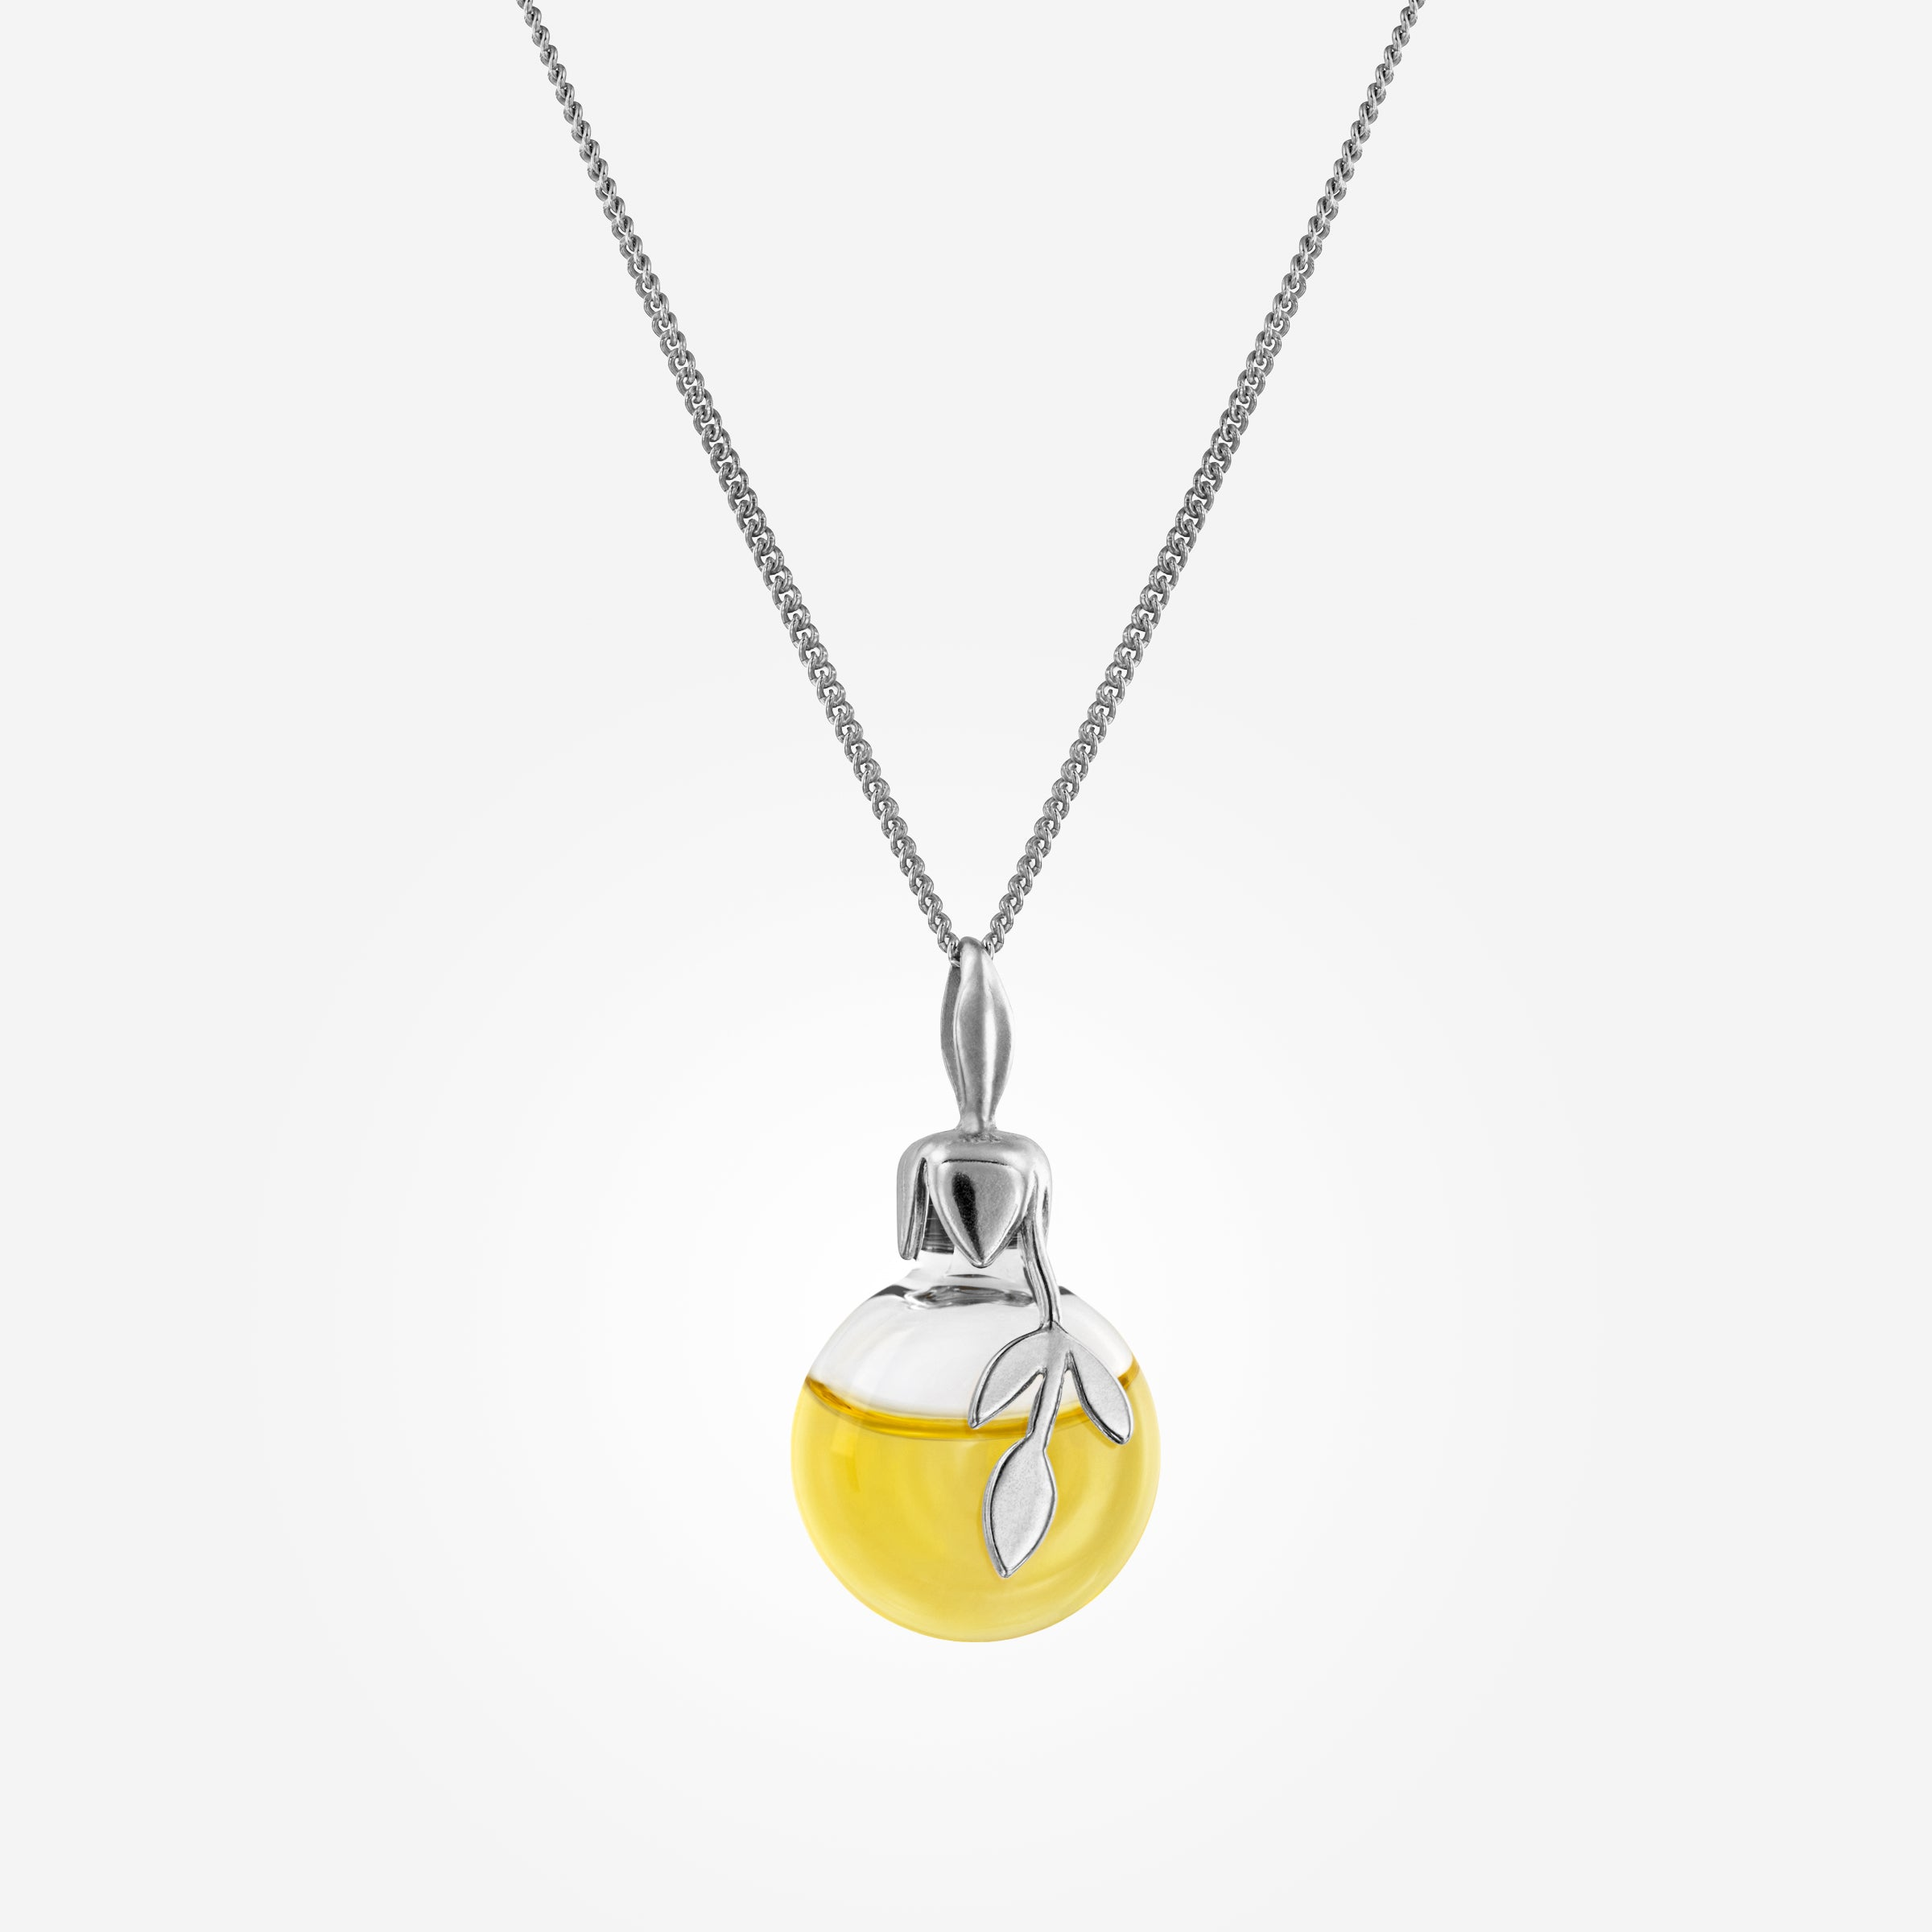 Leaf Oil Necklace